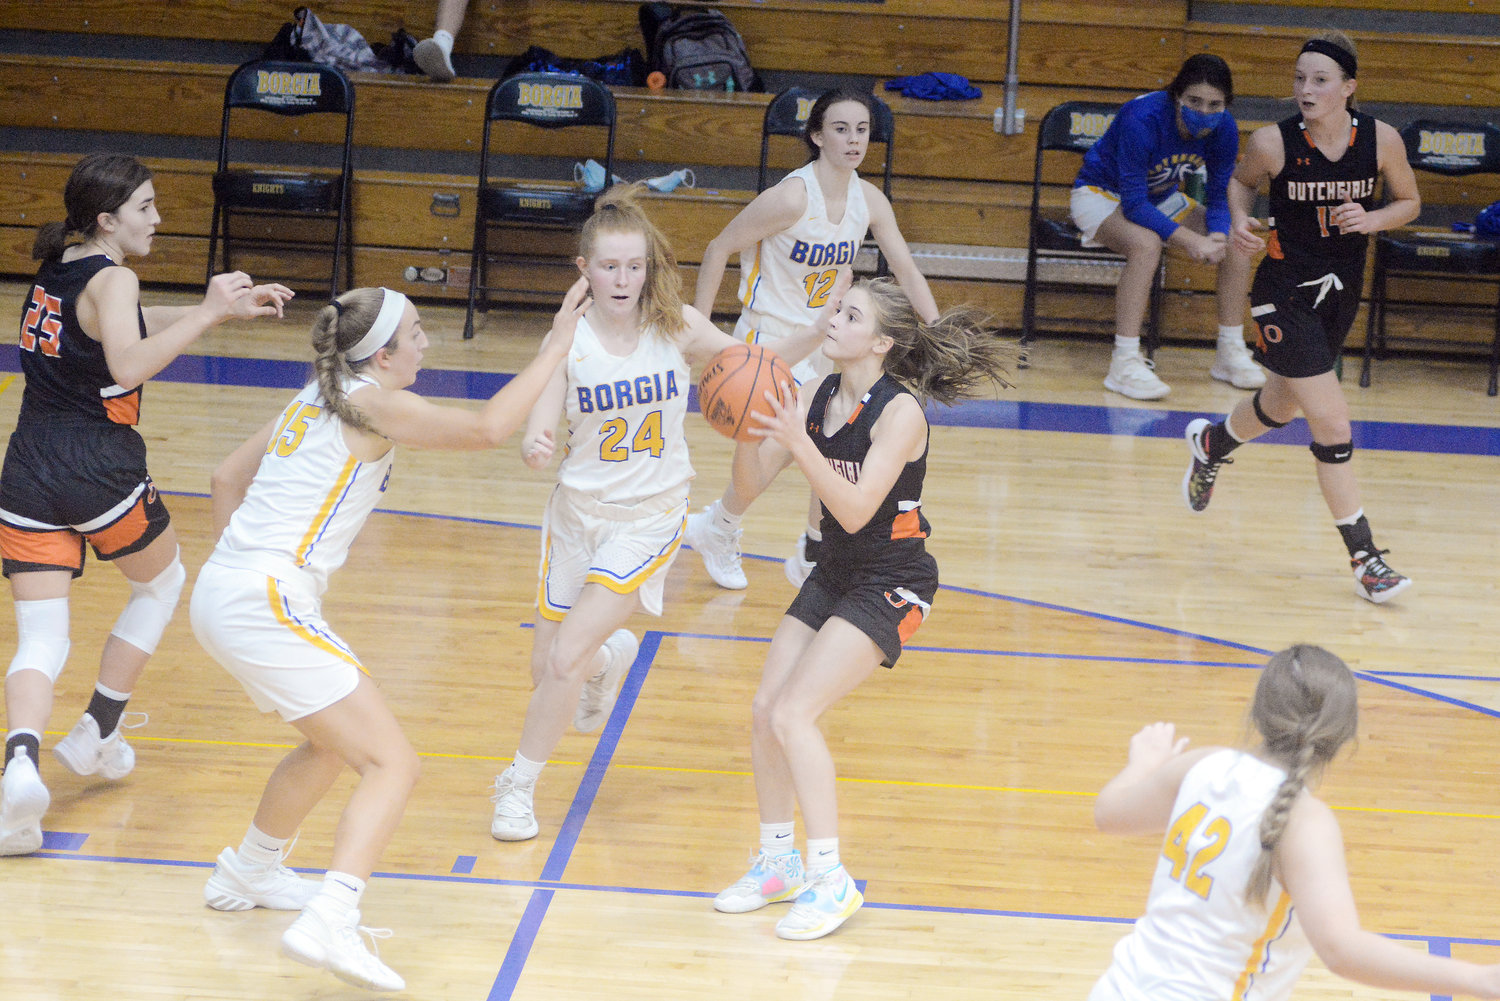 Emma Daniels (center) prepares to take a shot in the paint for Owensville during their season-opening 71-55 victory Monday night on the road over the St. Francis Borgia Lady Knights. Dutchgirl teammates also shown on offense were Anna Skornia (far left) and Anna Finley (far right).